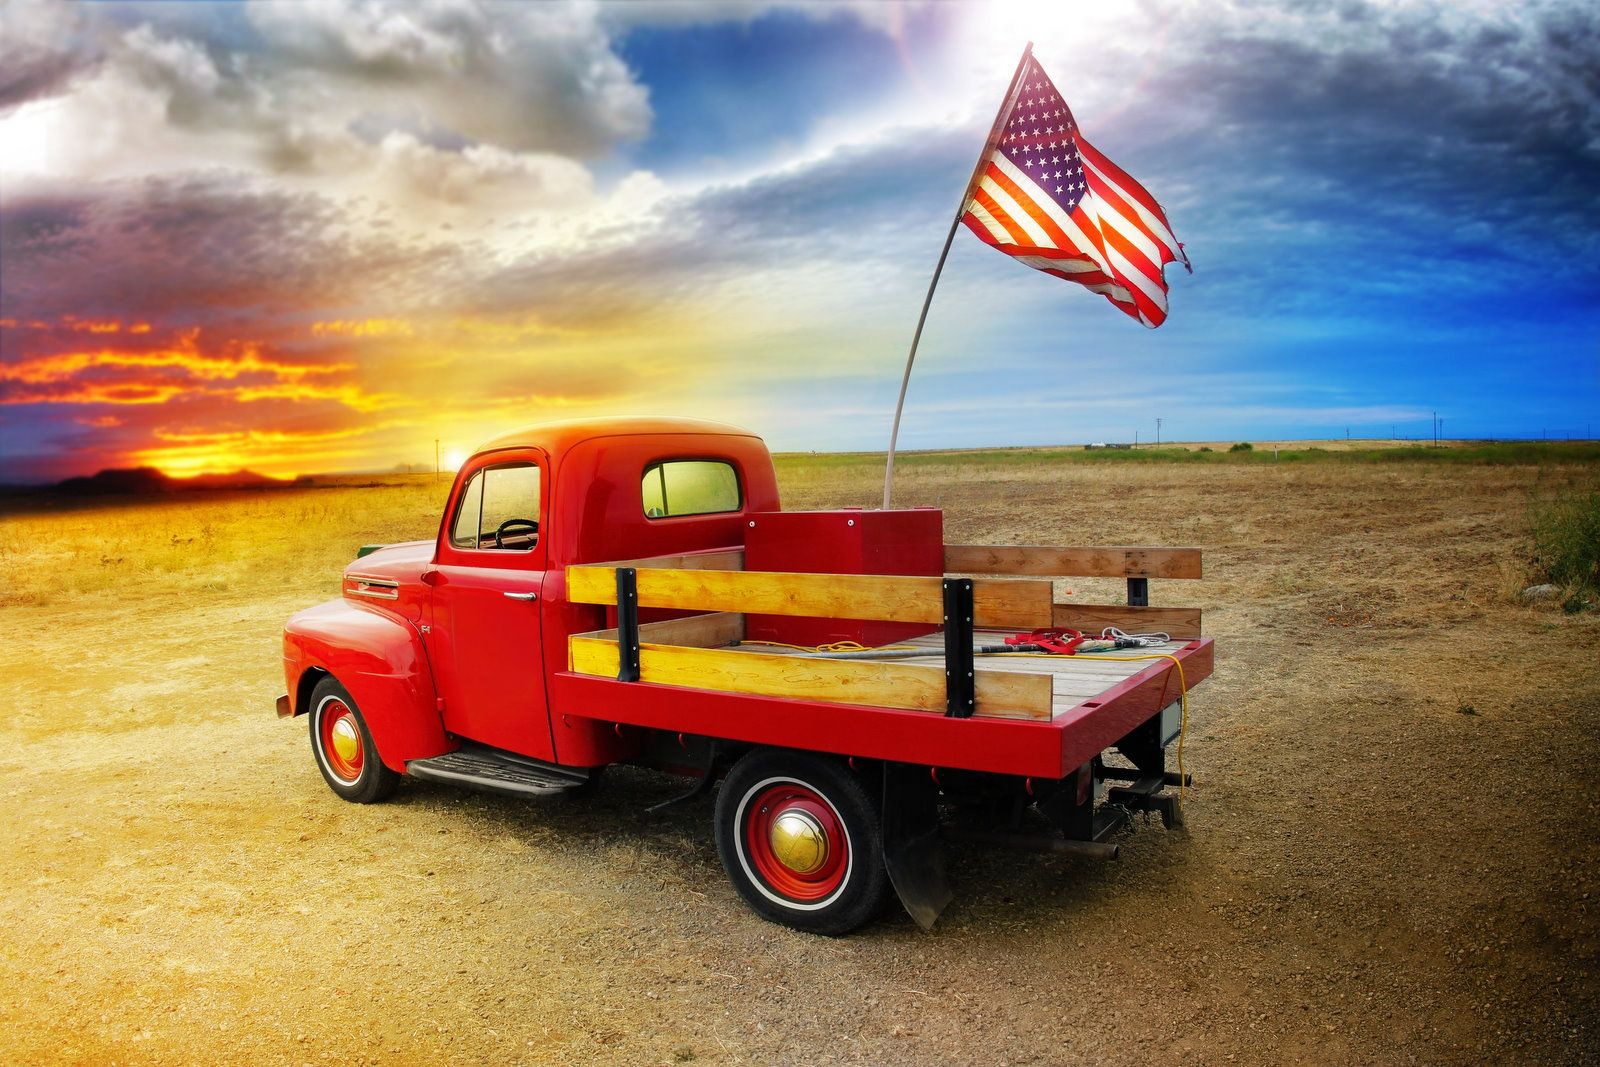 Old Red Pickup Truck With American Flag Facing Northeast